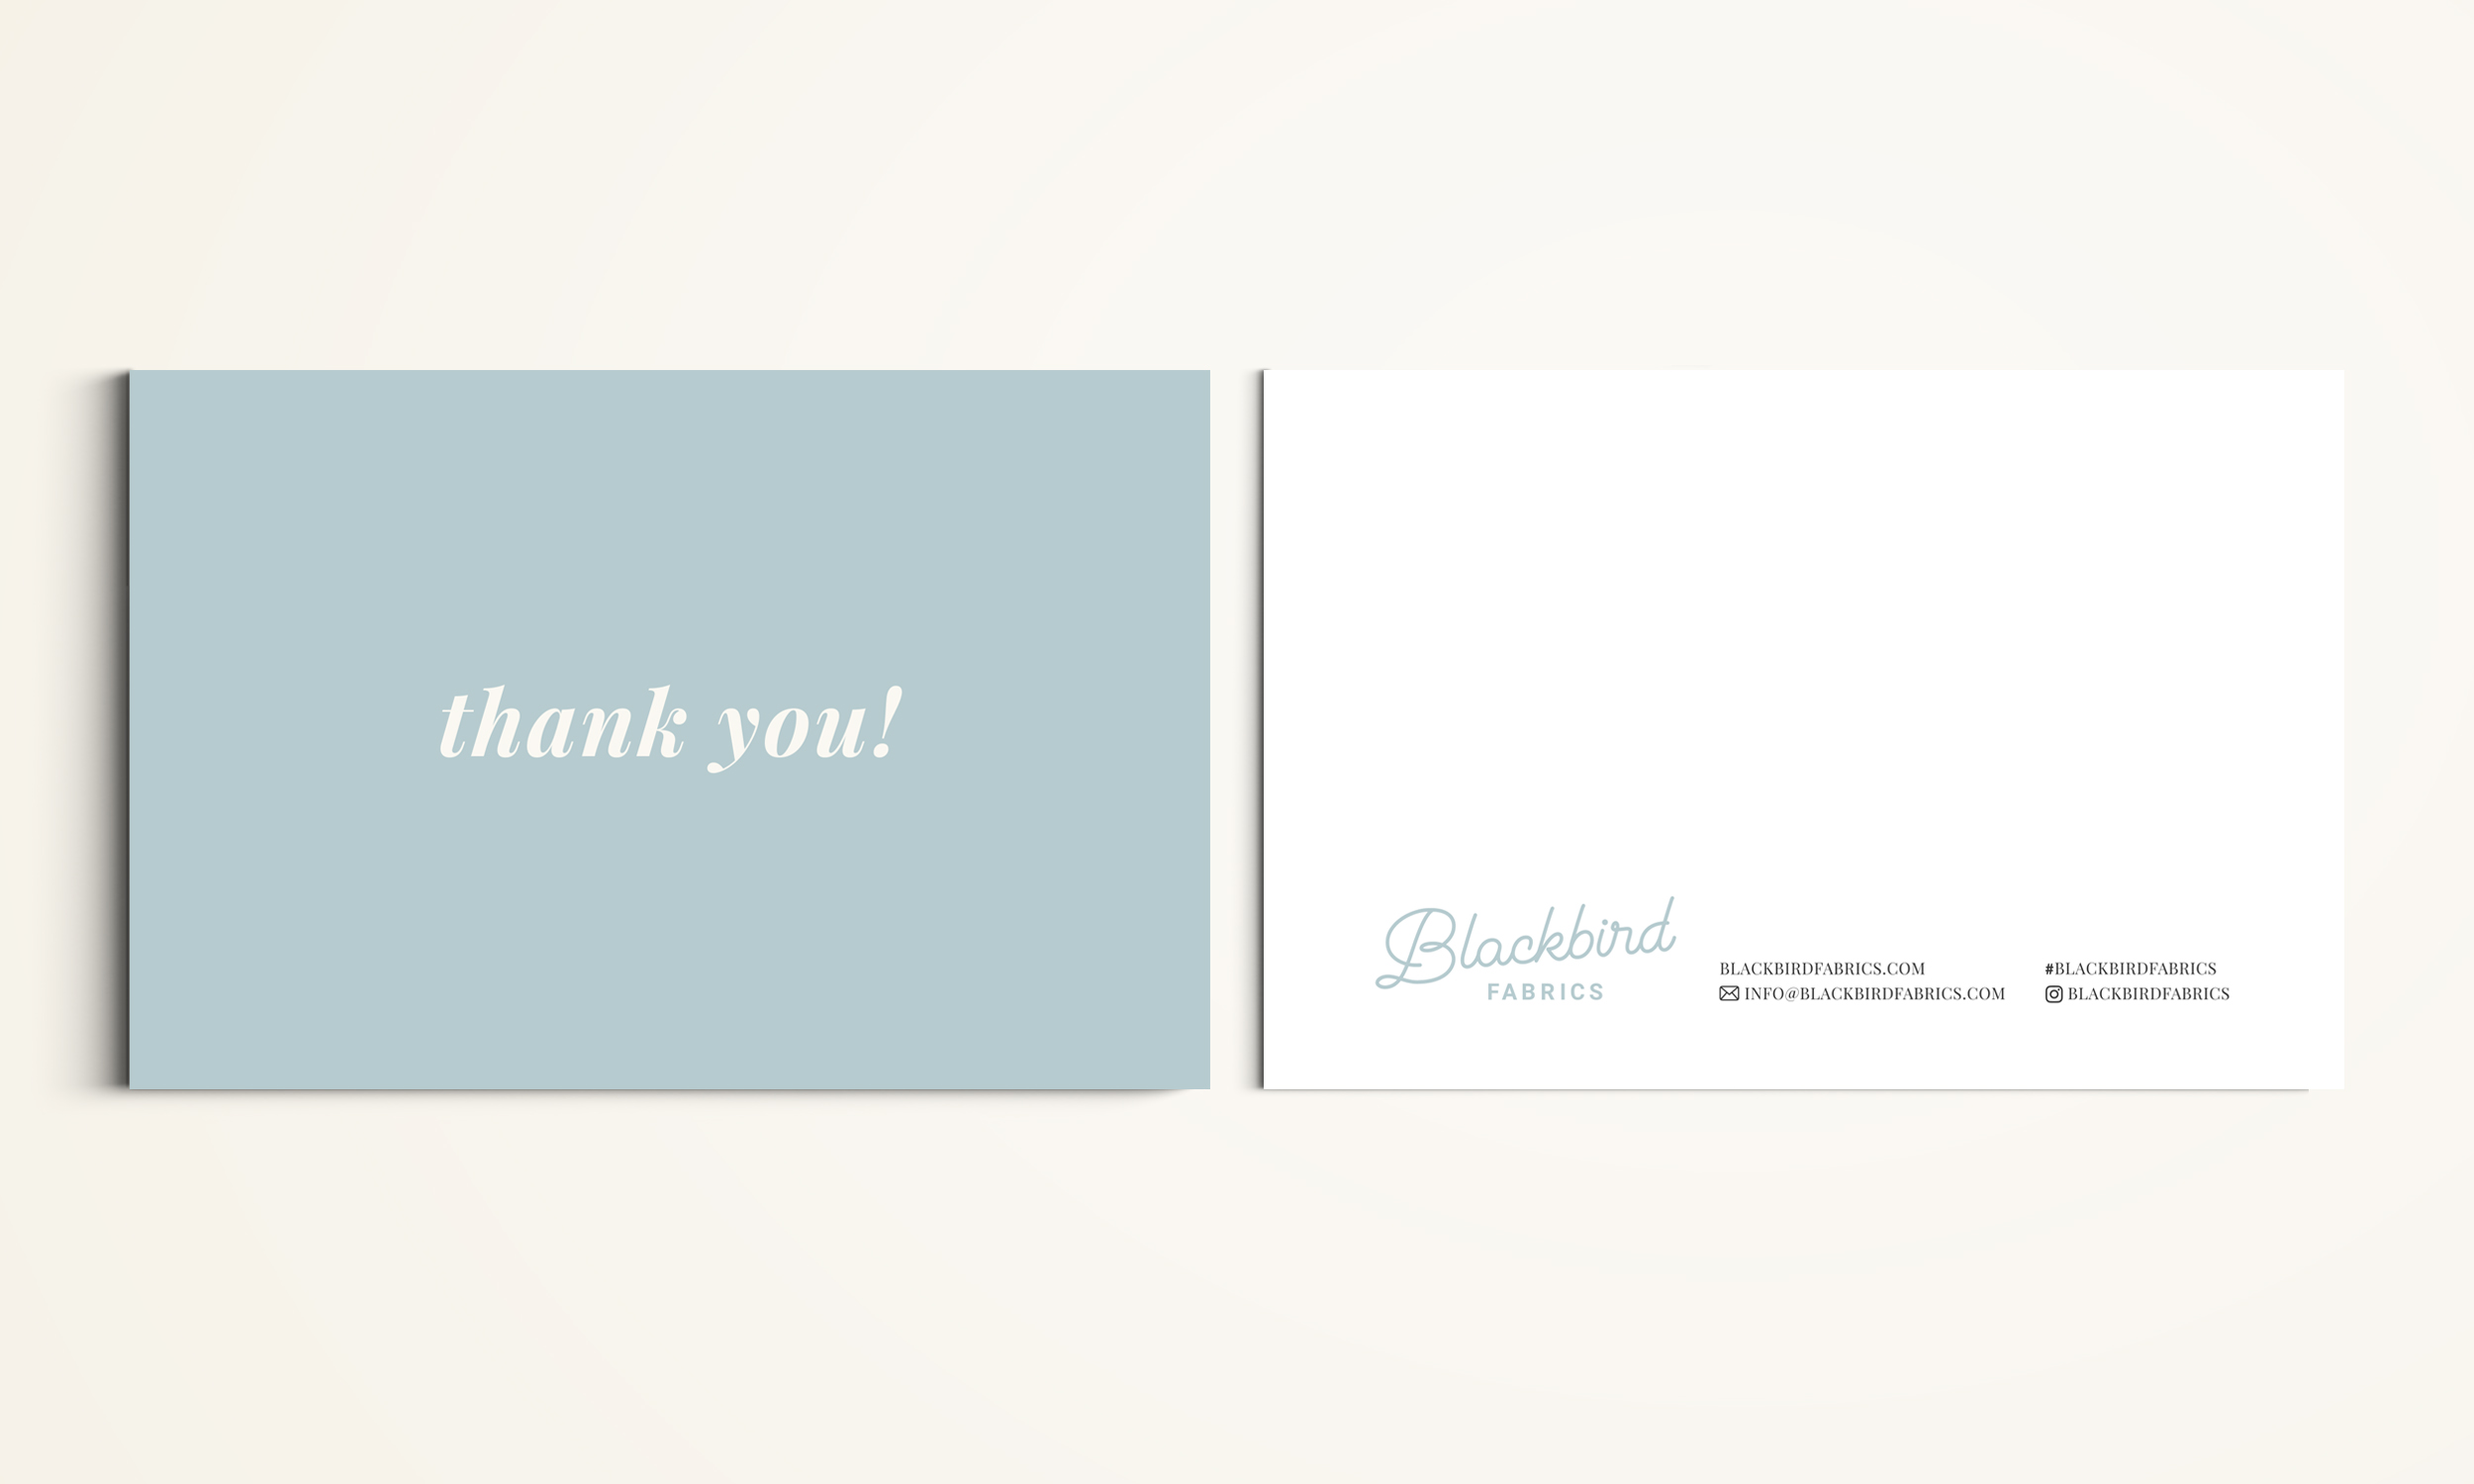 blackbird-thankyoucards-1.jpg